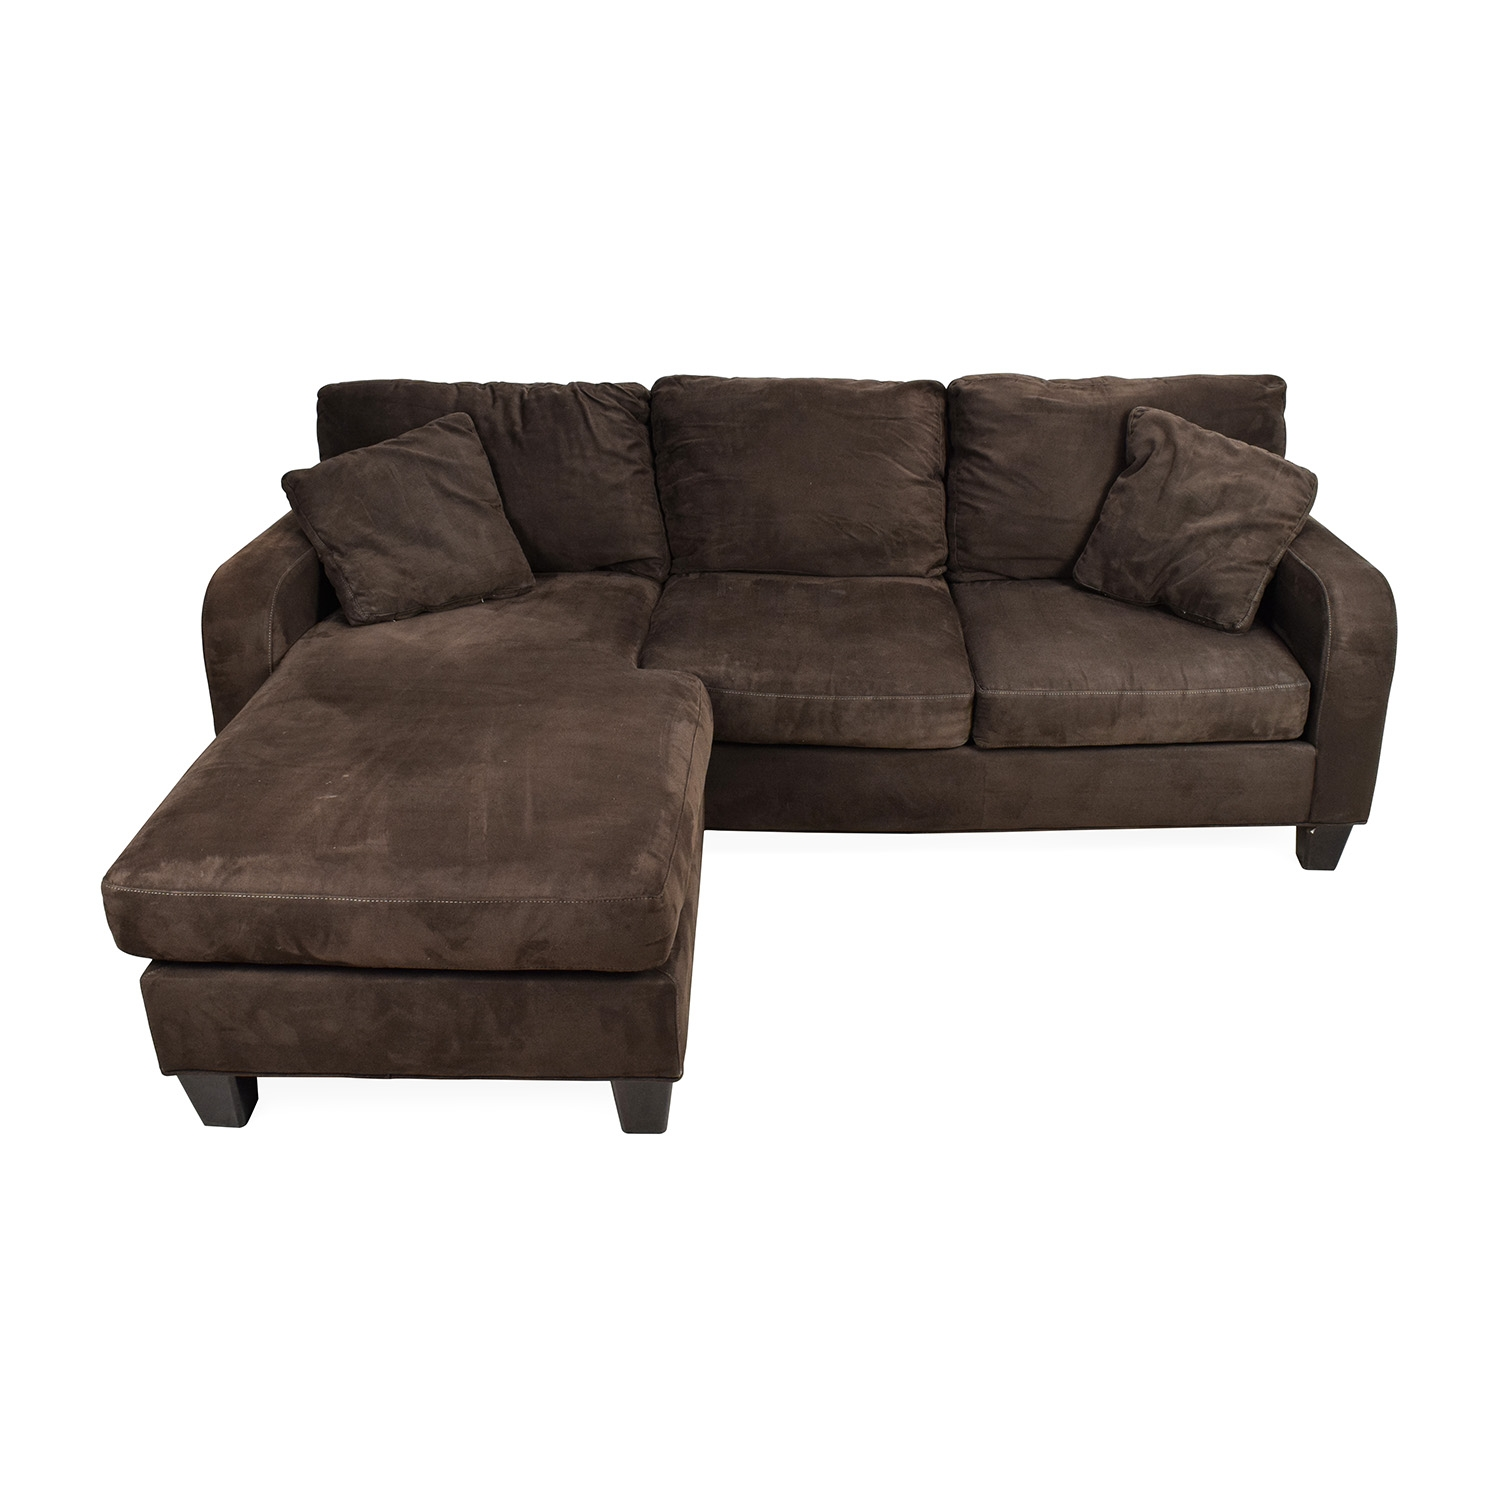 70 Off Cindy Crawford Home Cindy Crawford Bailey Microfiber Intended For Cindy Crawford Home Sectional Sofa (Image 1 of 15)